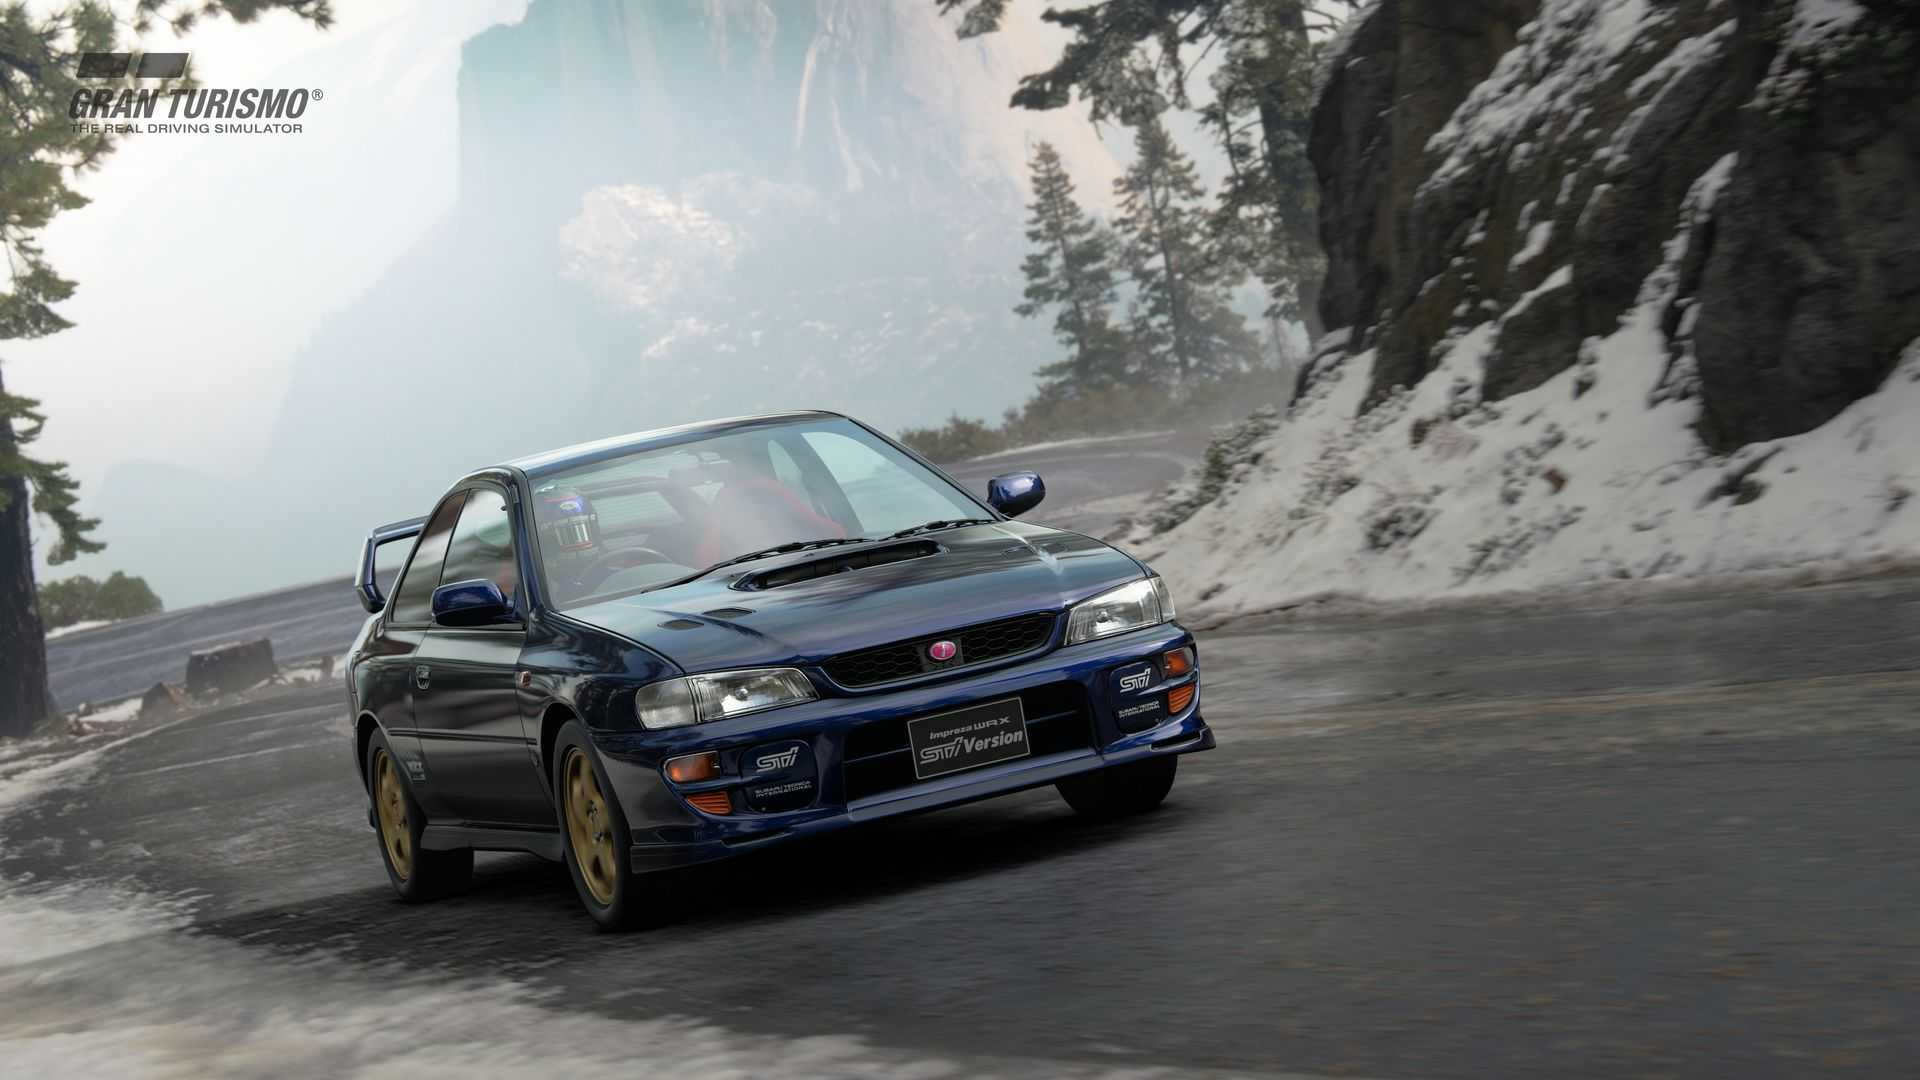 1999-subaru-impreza-coupe-wrx-type-r-sti-version-vi-joins-gran-turismo-sport